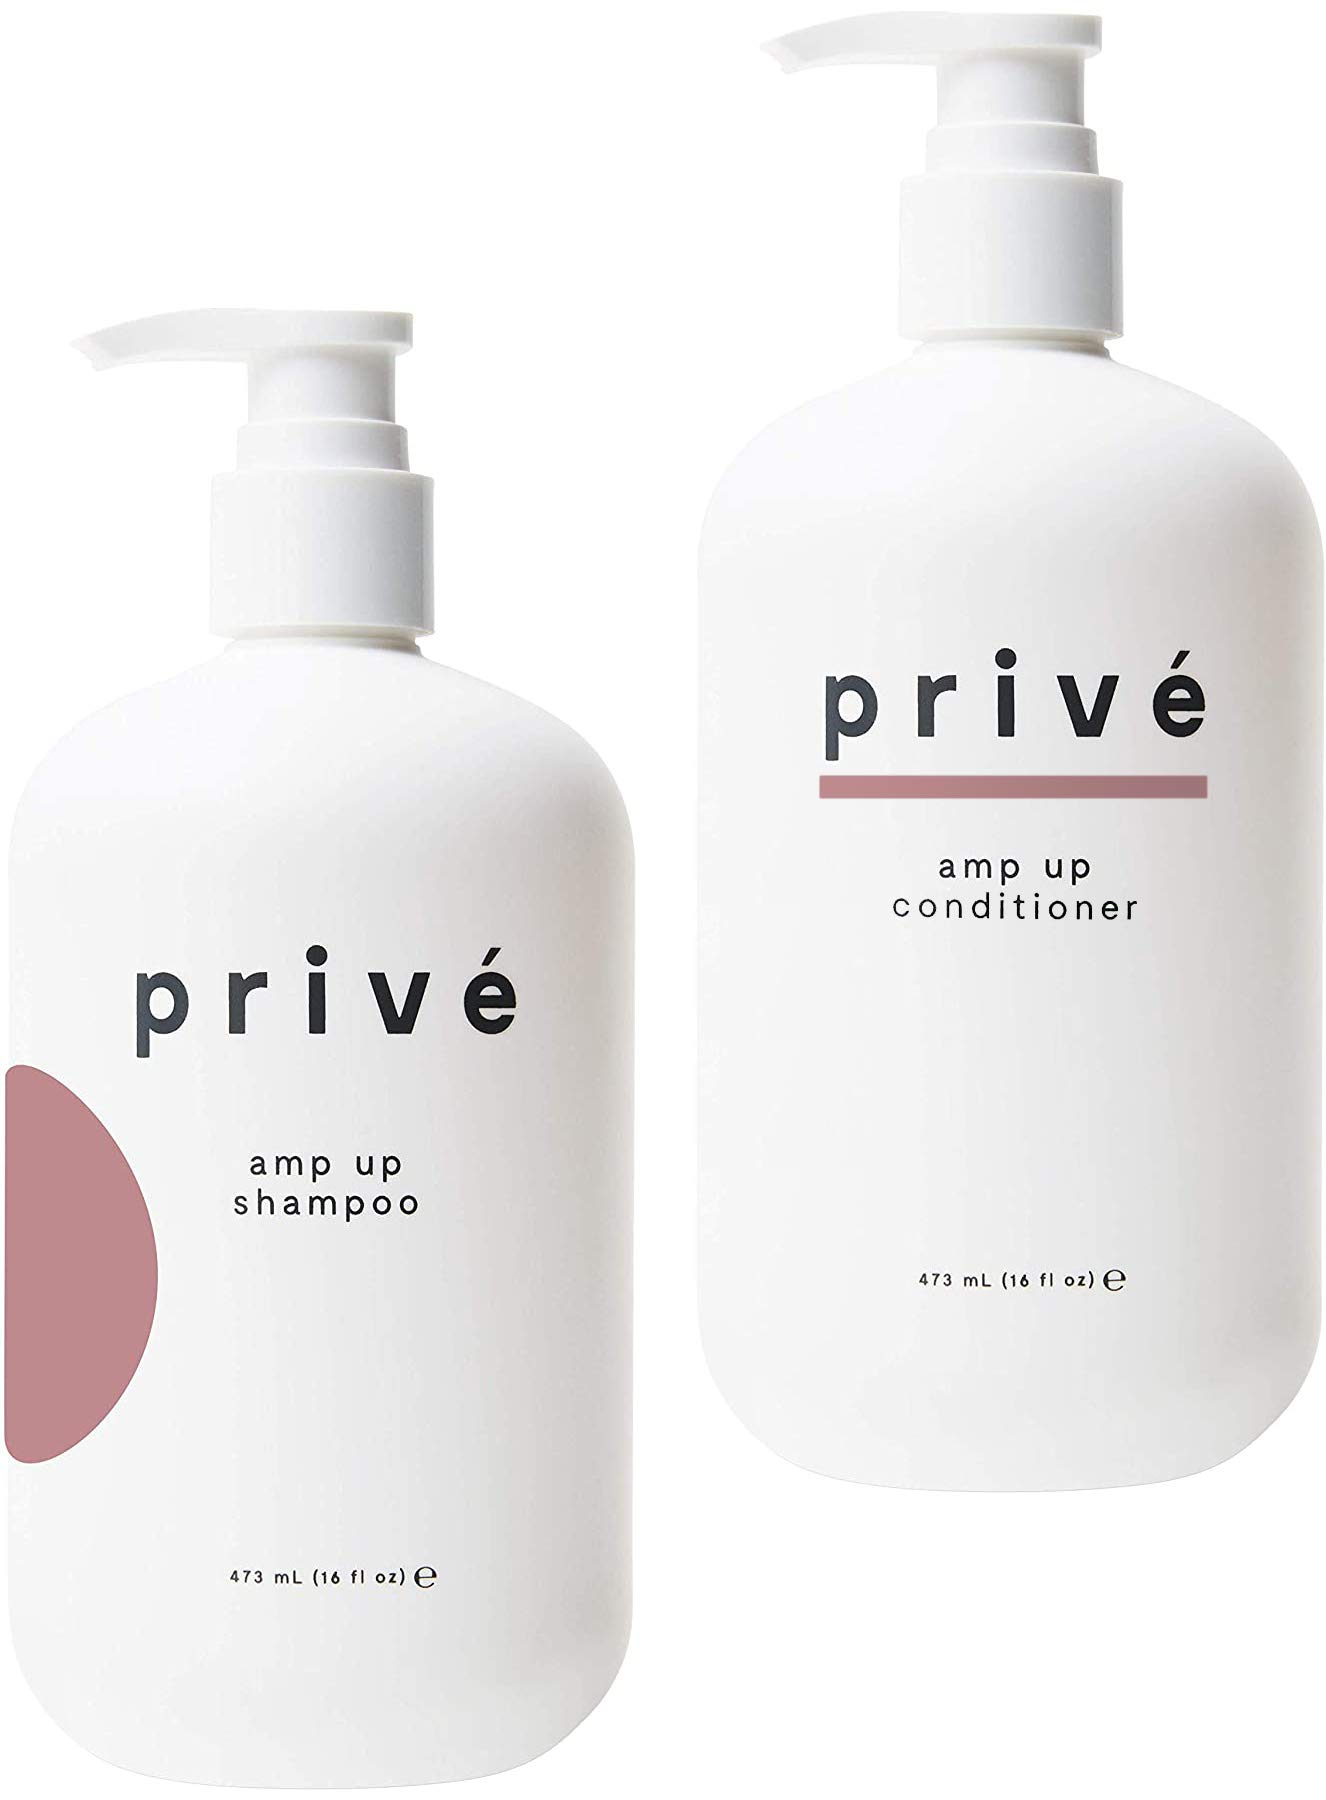 Privé Amp Up Shampoo and Conditioner Kit – Clarifying Shampoo & Volumizing Conditioner – Purifying Shampoo & Weightless Conditioner for Oily, Fine, Thin Hair – Natural Ingredients, 16 oz each